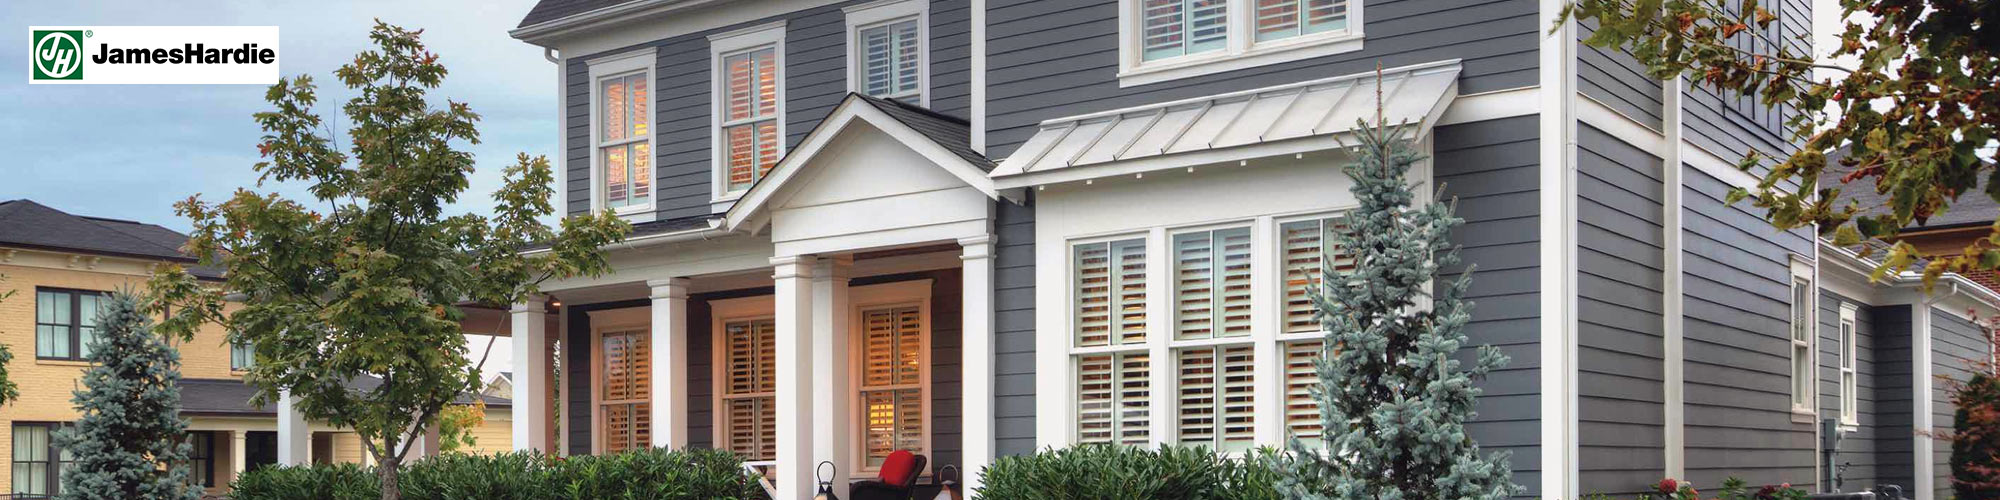 Hasheider Roofing and Siding Images